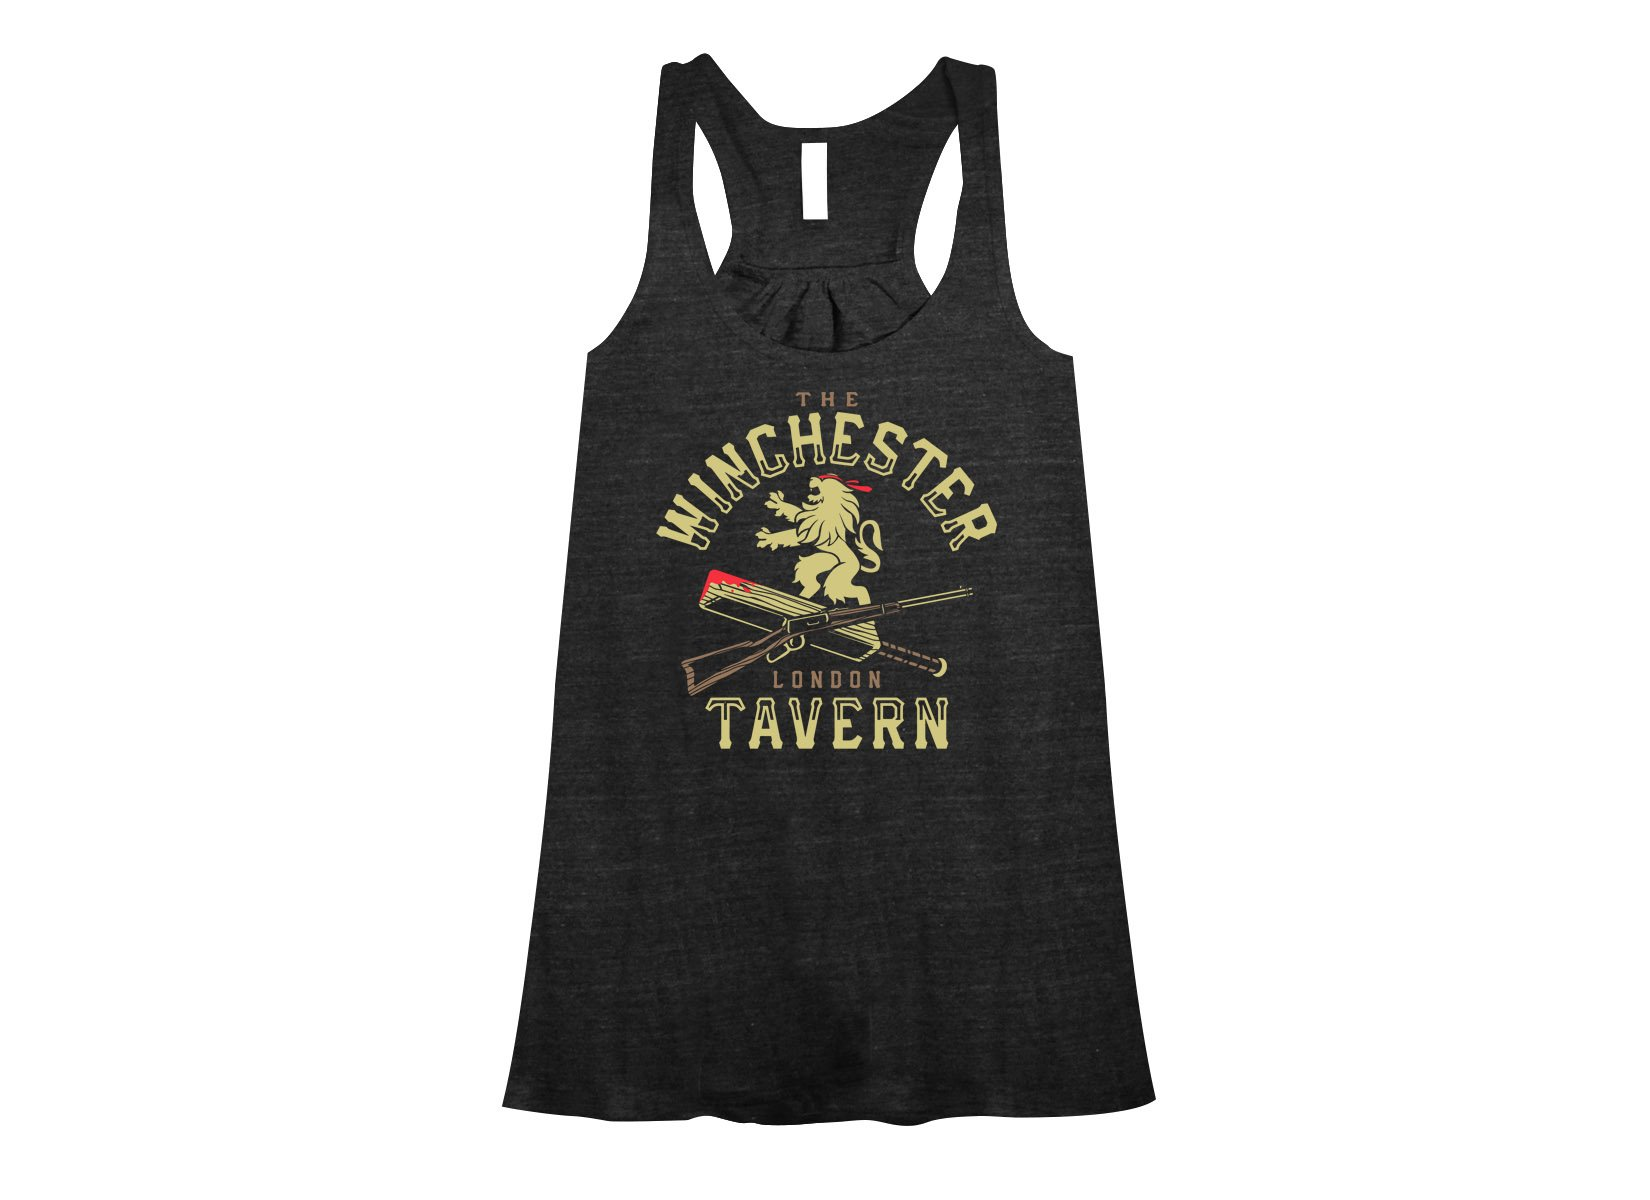 The Winchester Tavern on Womens Tanks T-Shirt